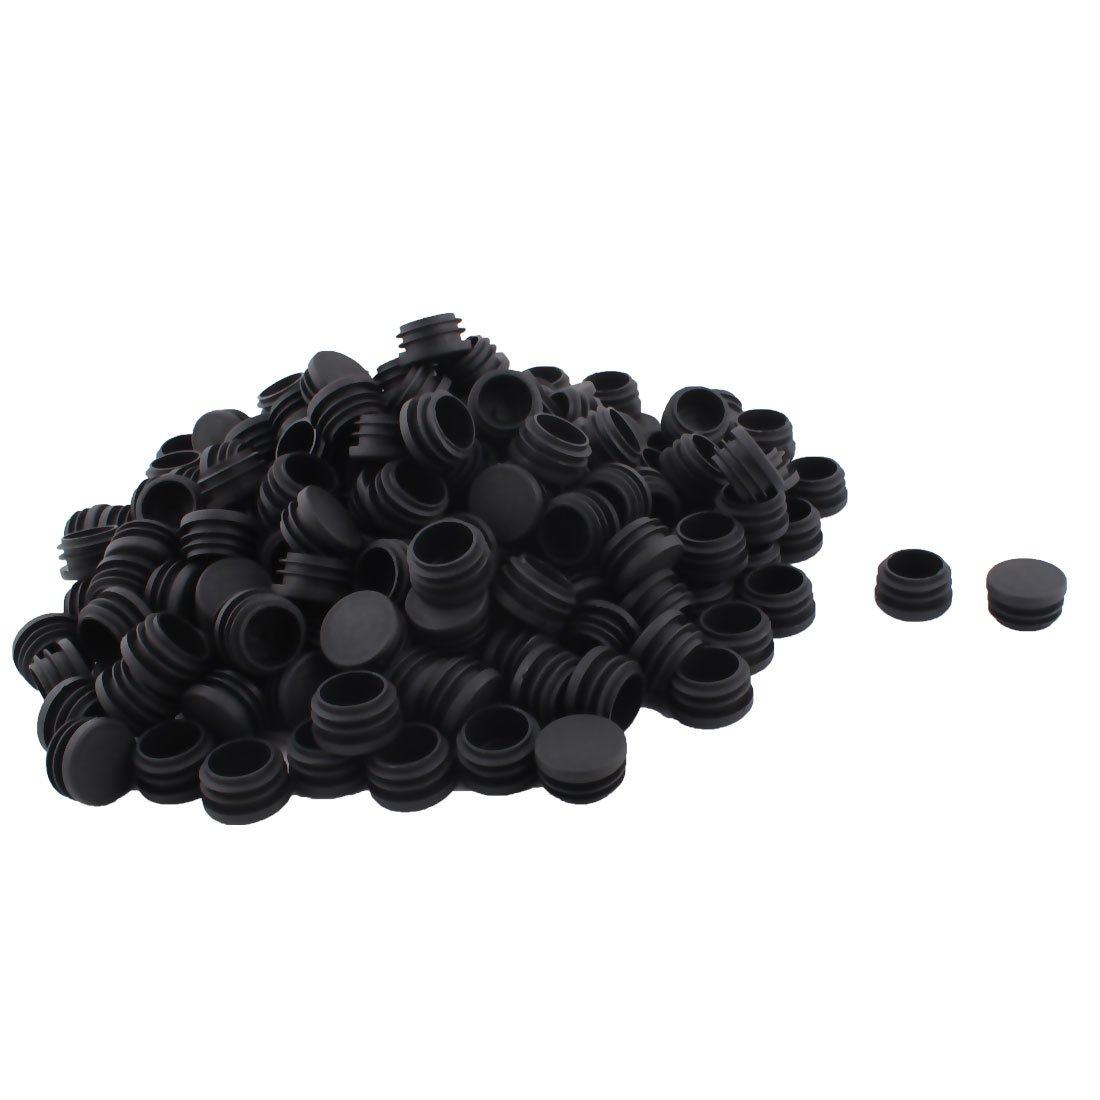 OKSLO Table chair legs plastic round tube insert cap cover plug black 30mm dia 200pcs